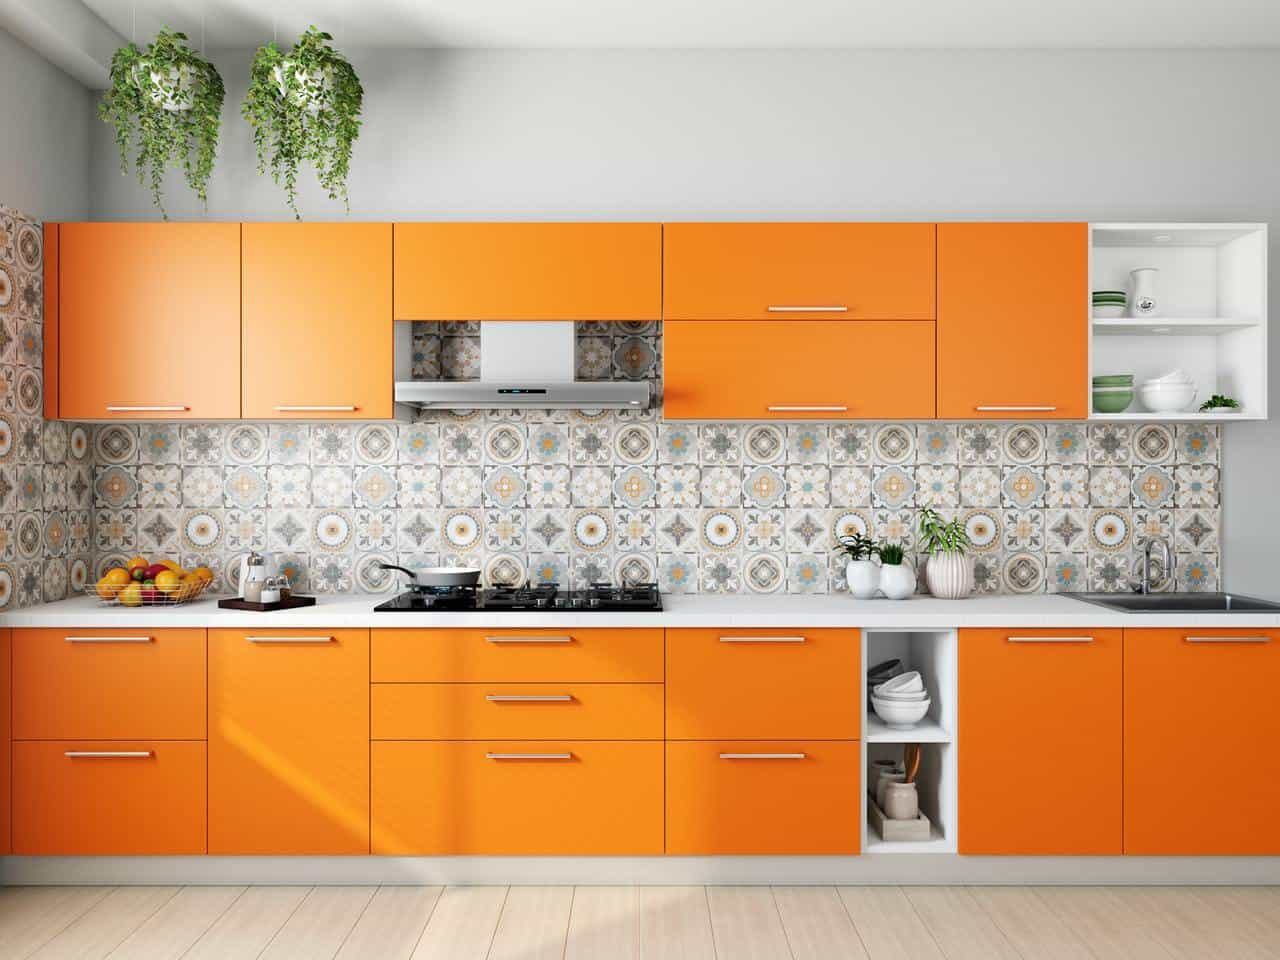 Tips For When You Redo Your Kitchen - Cha Ching Queen